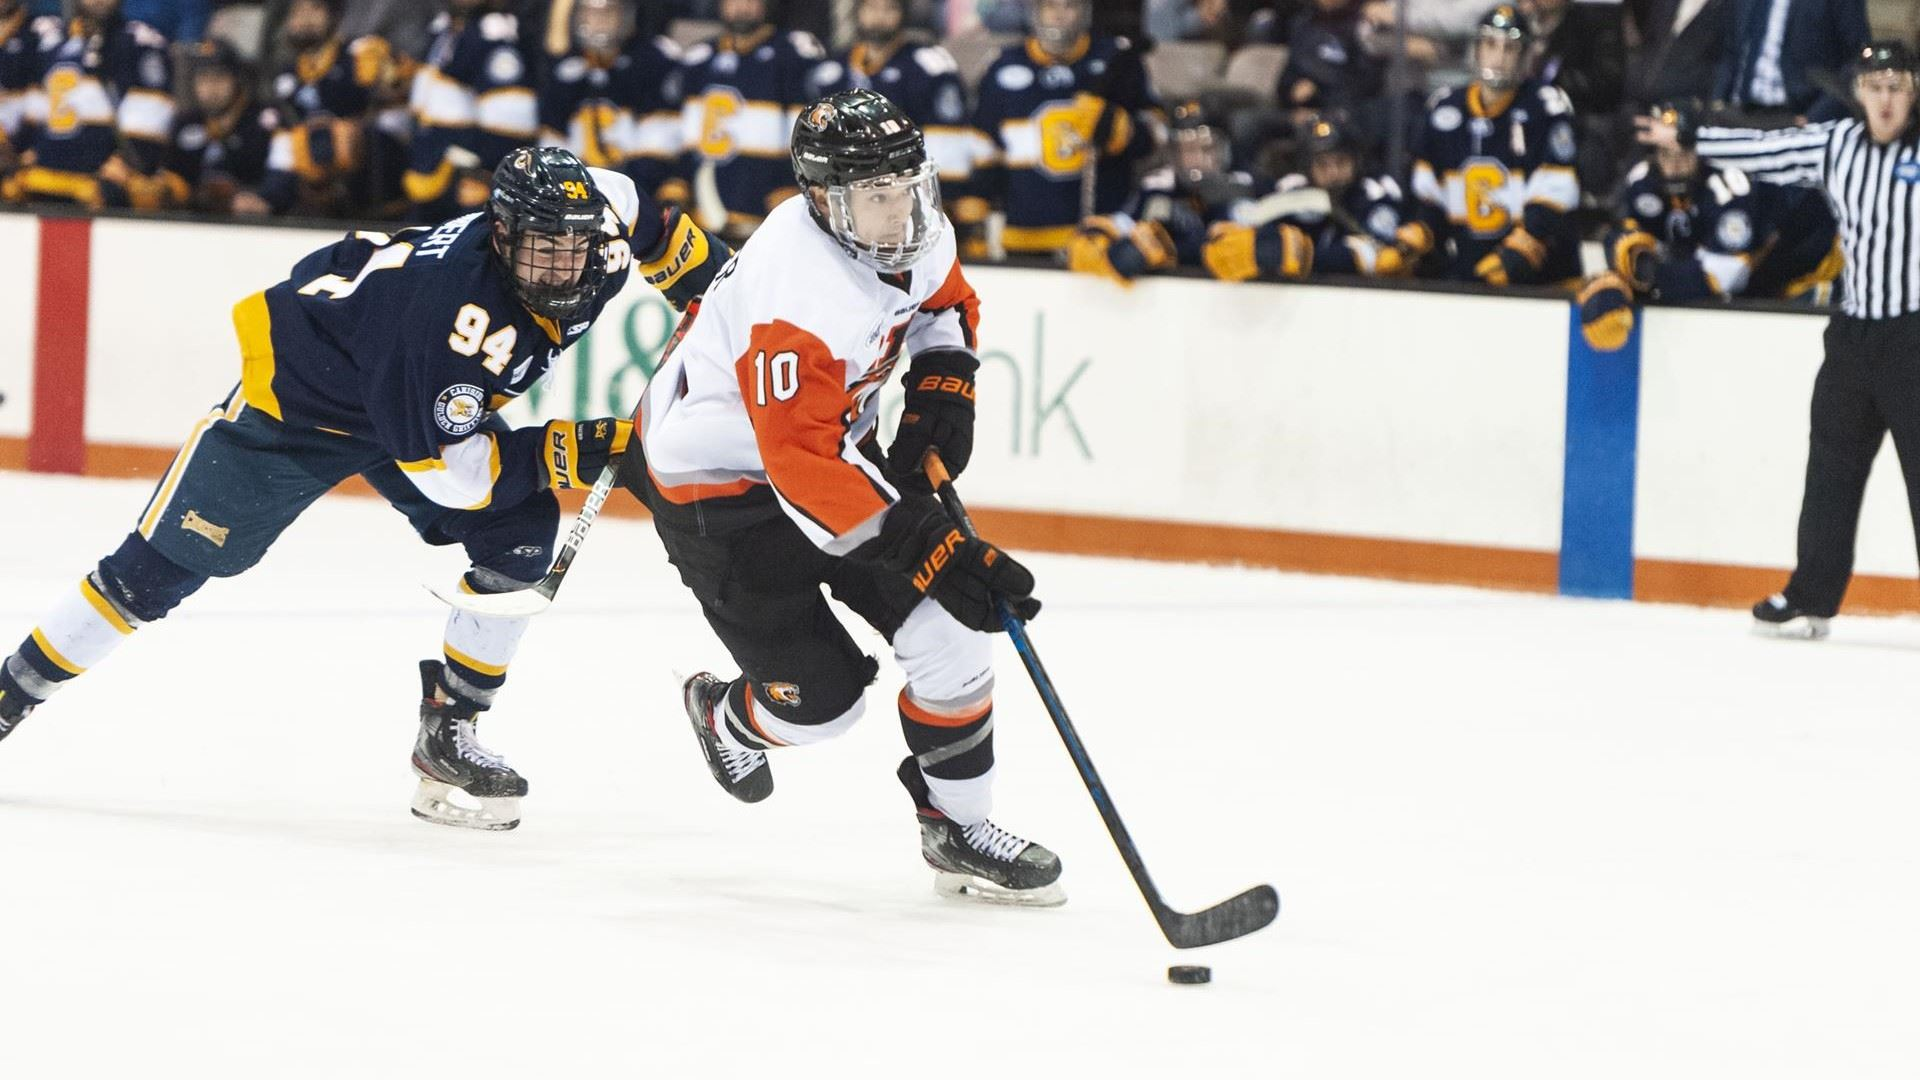 RIT scores four-unanswered to earn 5-4 comeback win over Canisius